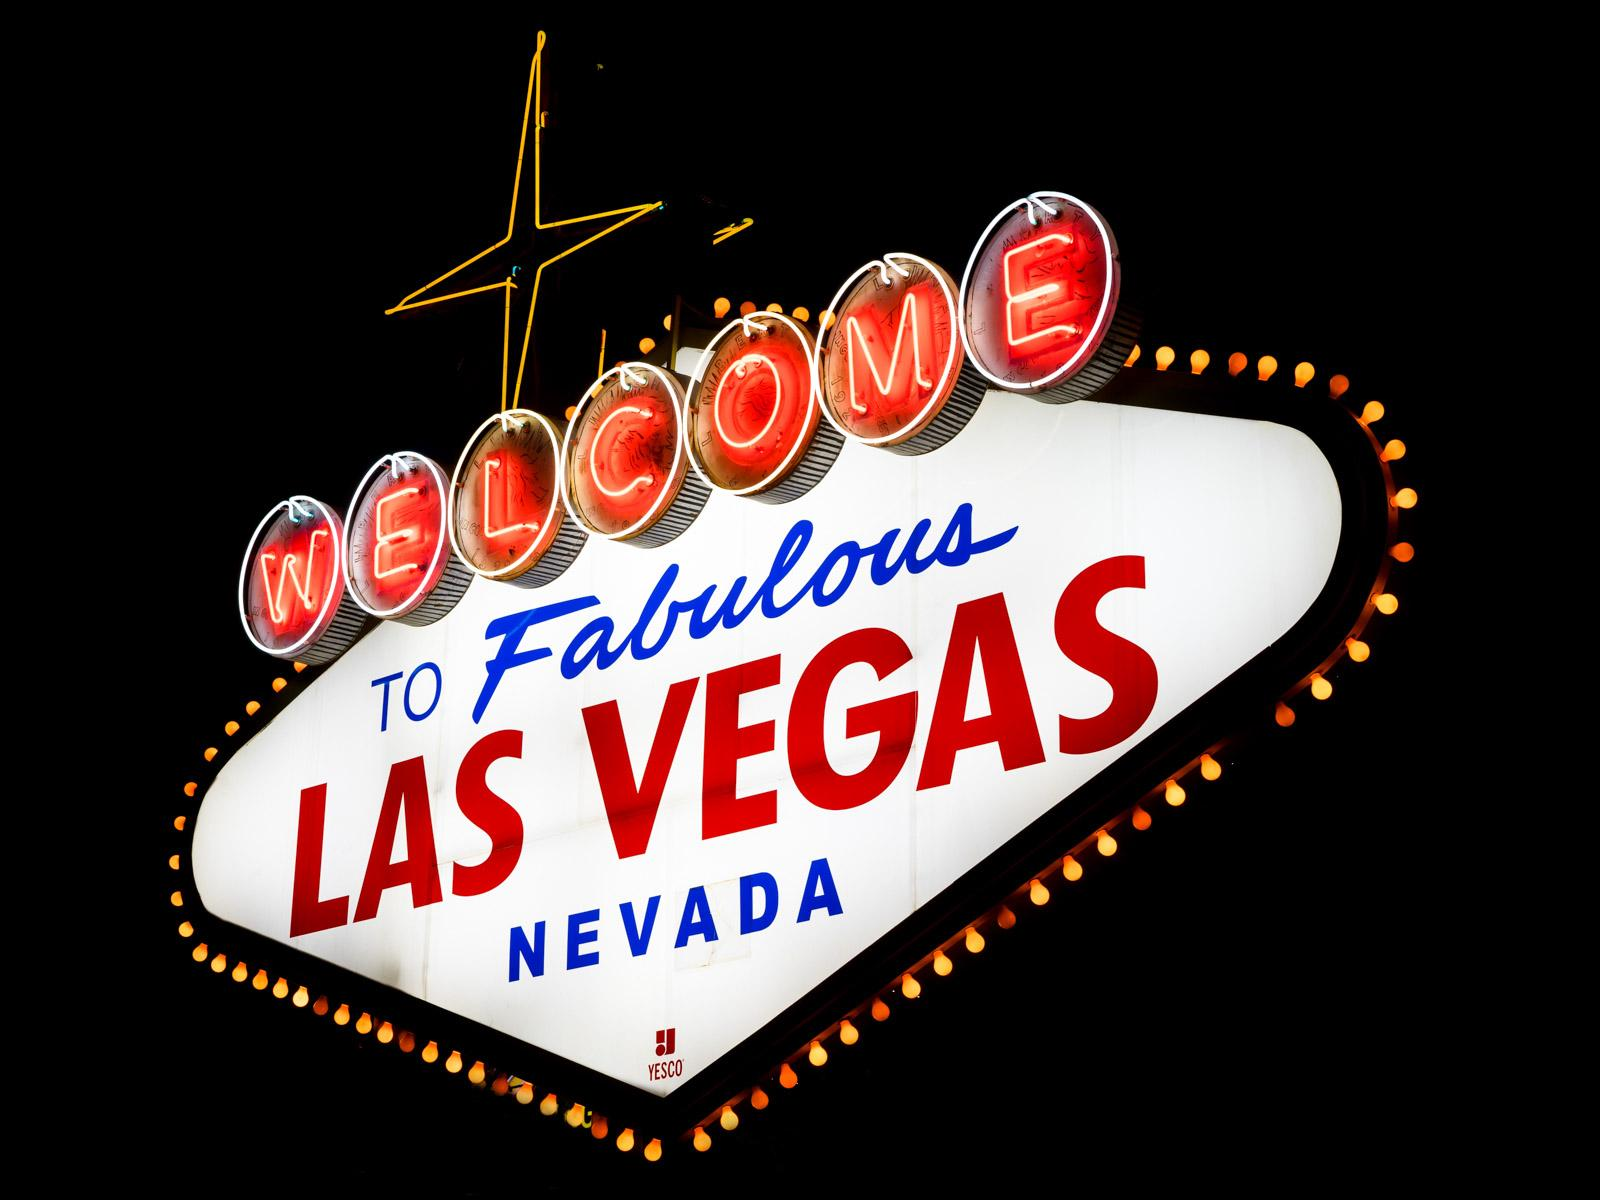 Welcome to fabulous Las Vegas Schild bei Nacht